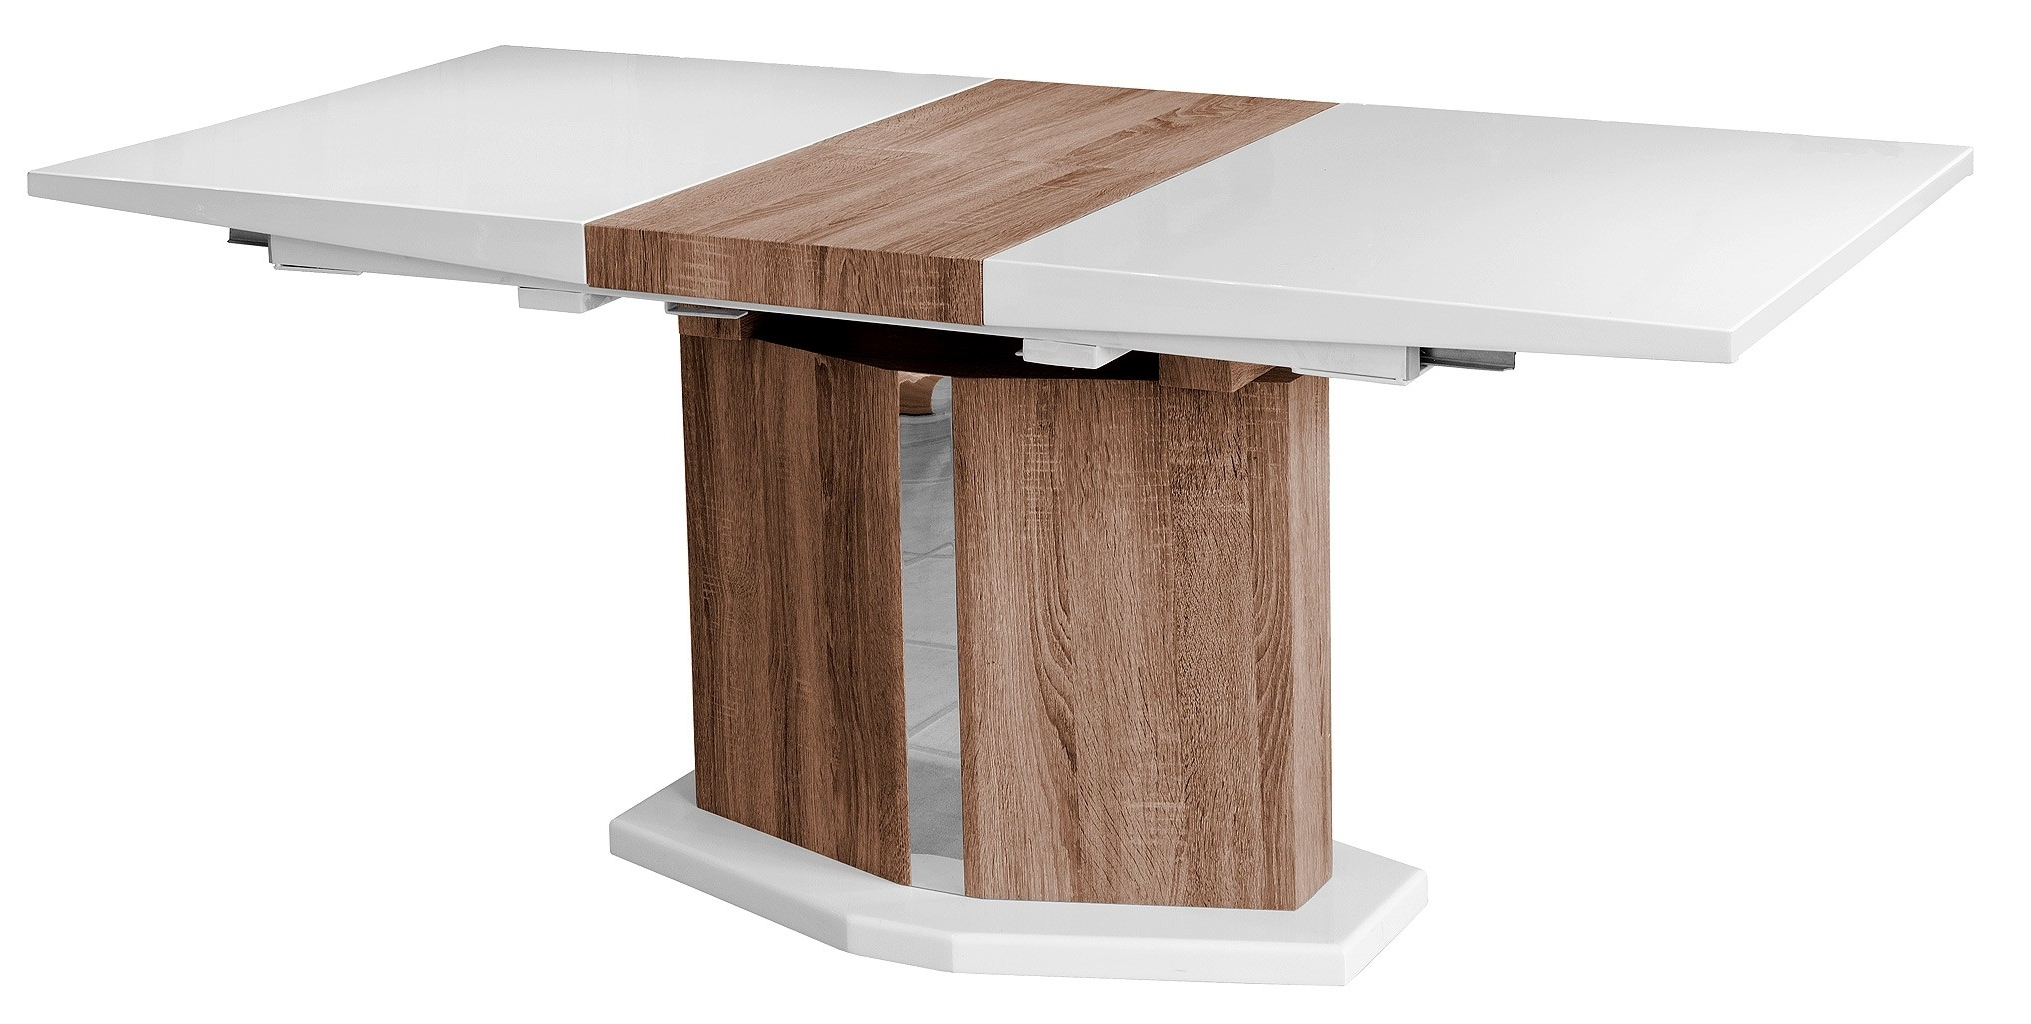 White Extendable Dining Tables Inside Most Popular High Gloss White Extending Dining Table – Be Fabulous! (View 18 of 25)